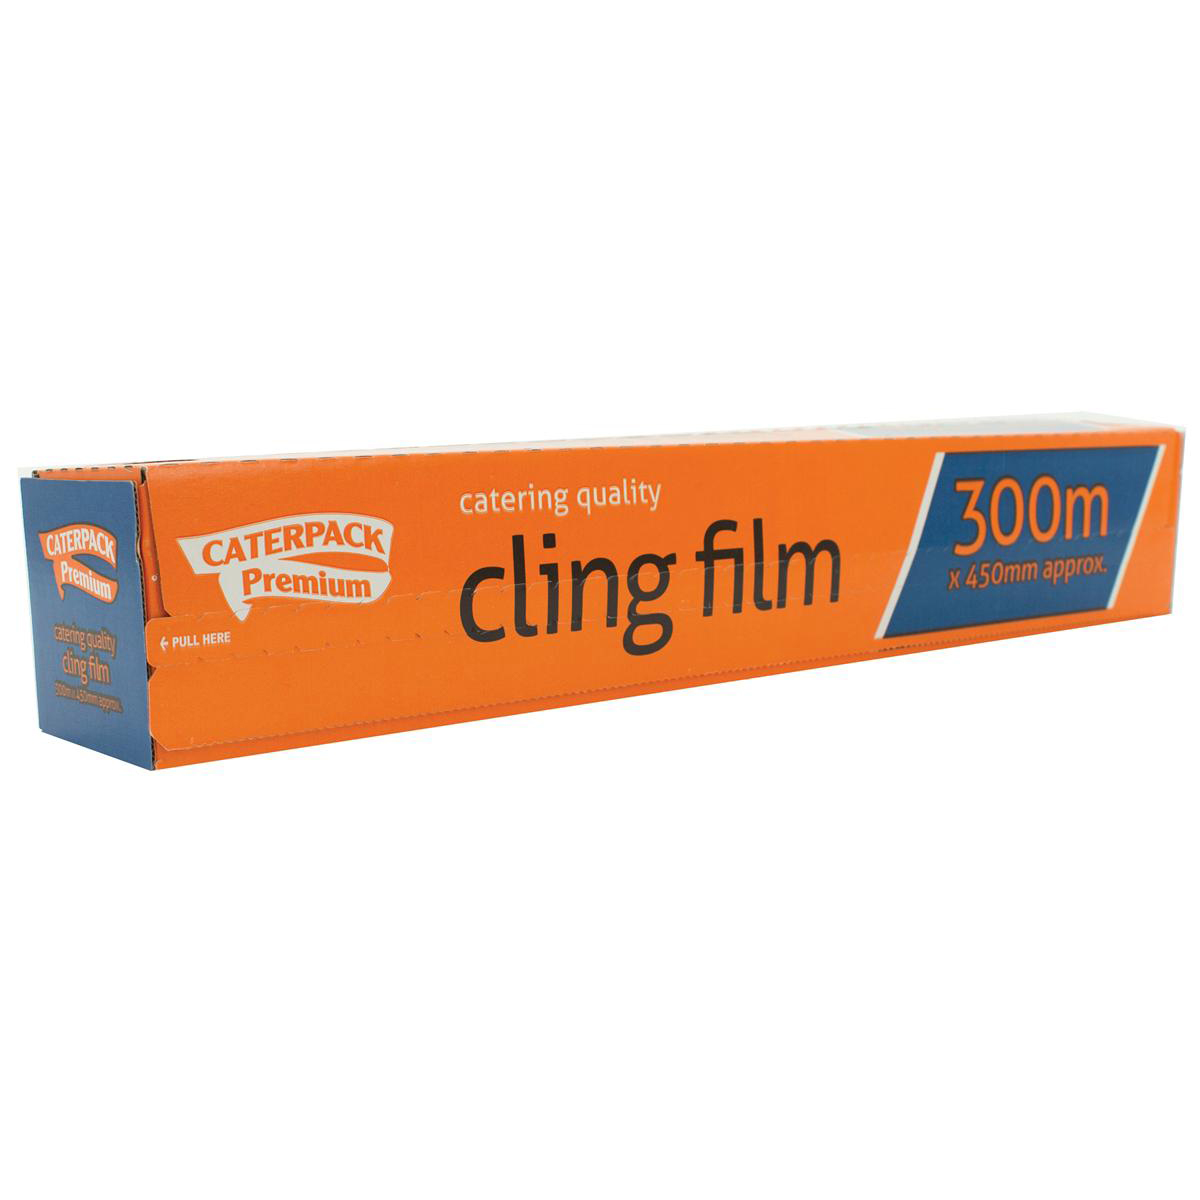 Aluminum foil Caterpack Cling Film Antibacterial 450mm x 300m Ref 0163